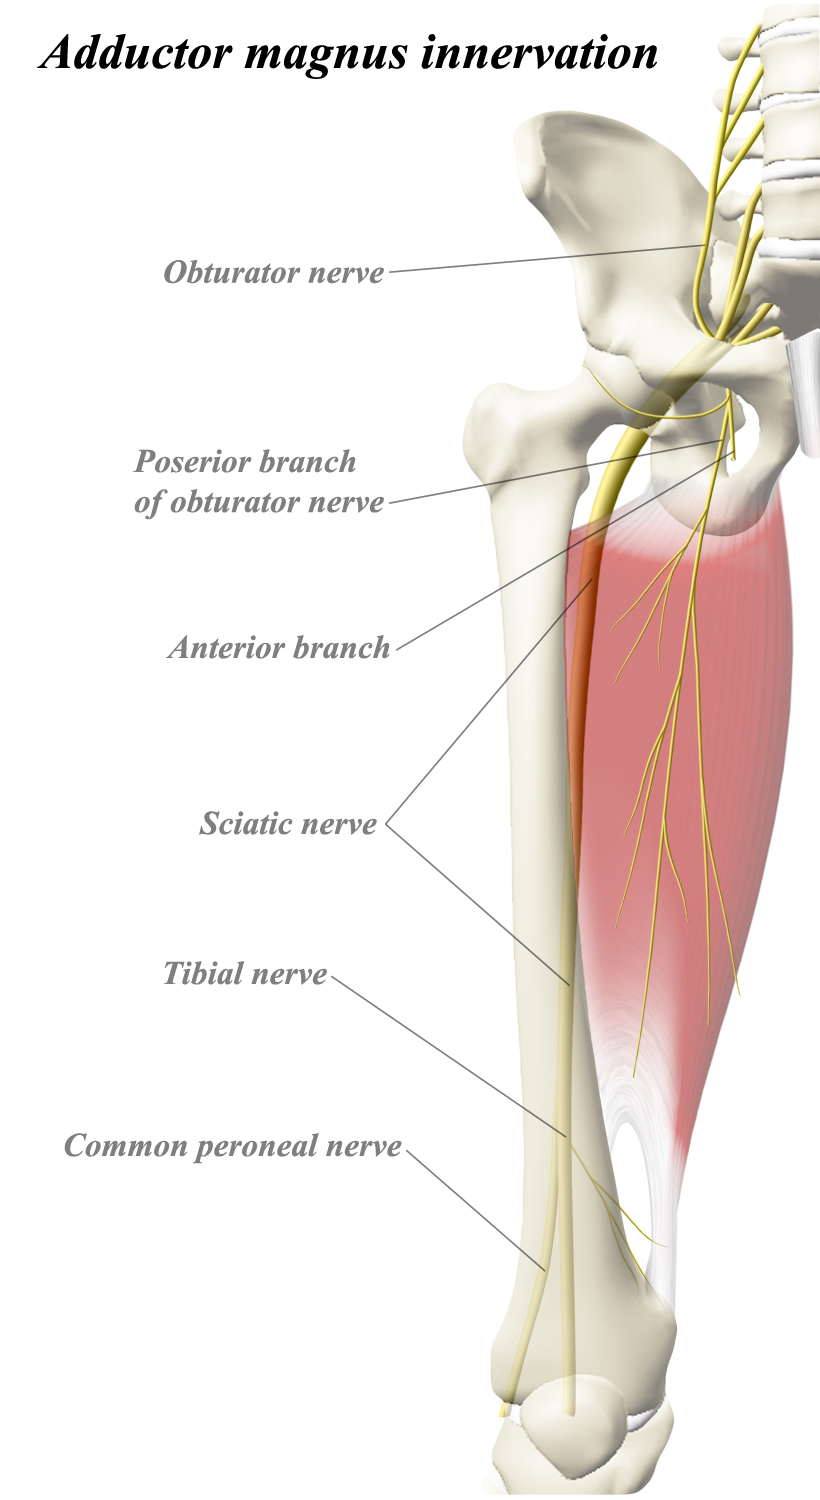 https://upload.orthobullets.com/topic/10067/images/adductor nerve1500.jpg